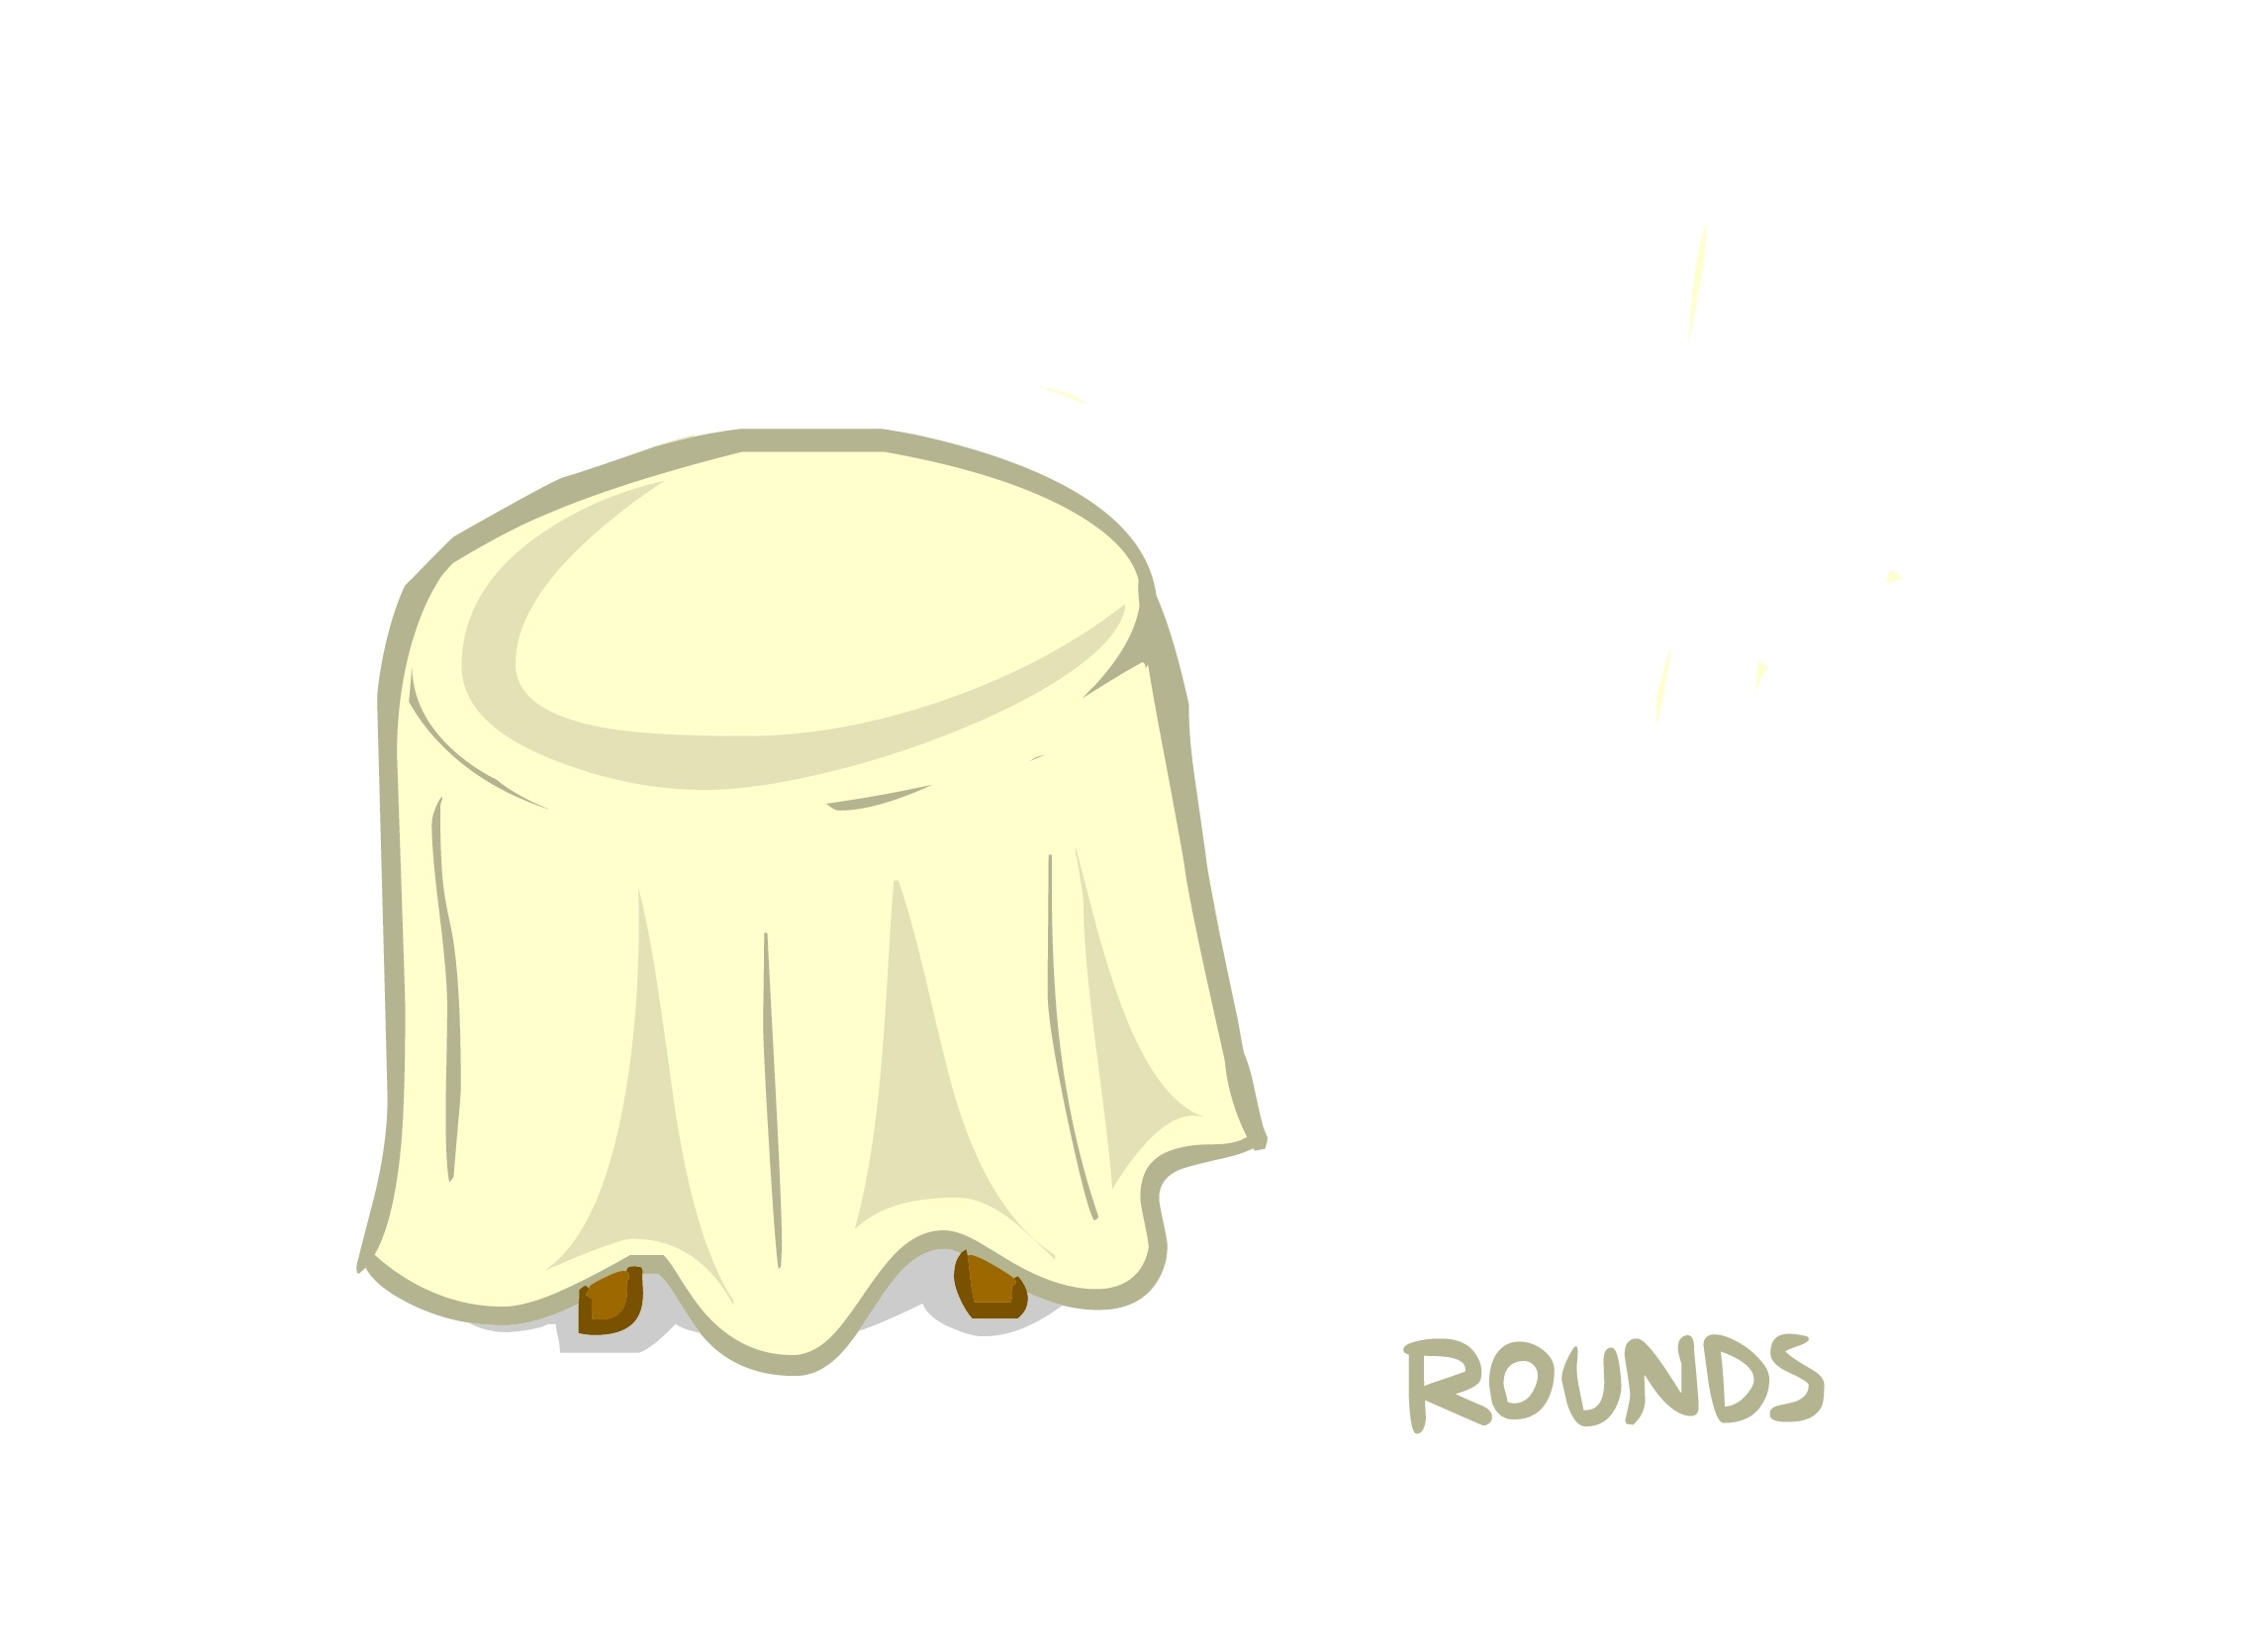 Lace Round Tablecloths 01295